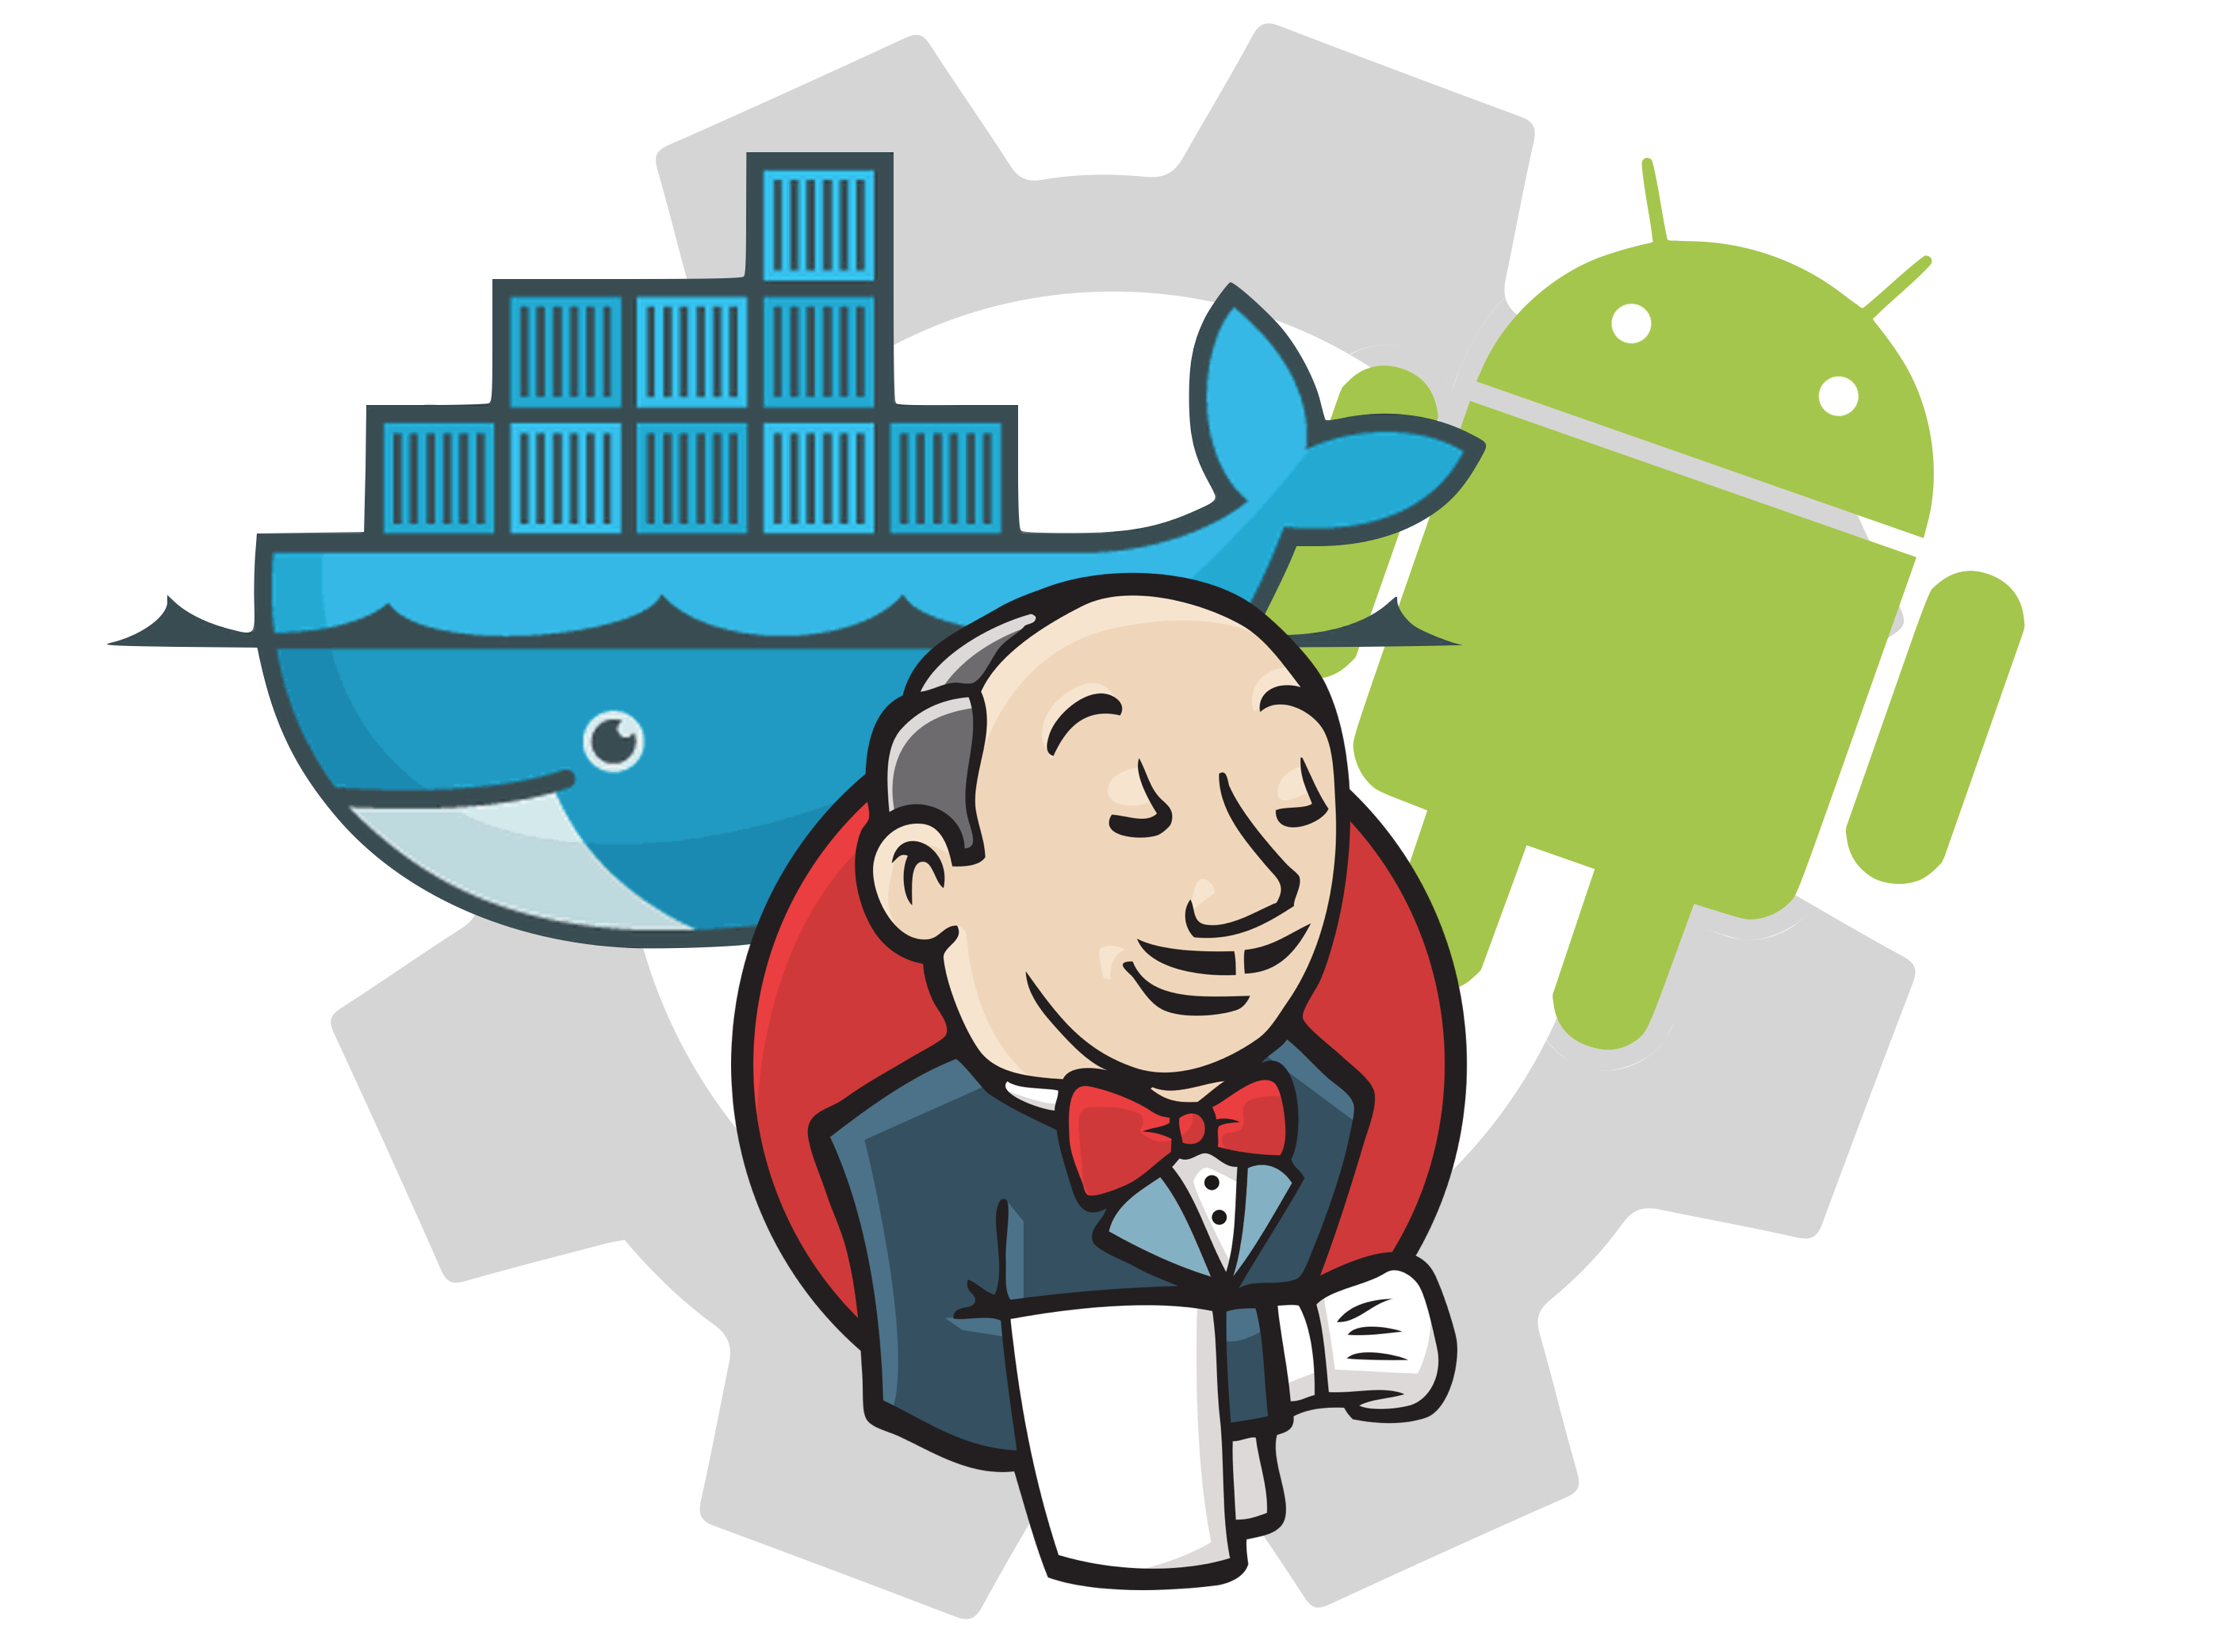 How to setup a CI/CD pipeline for Android using Jenkins and Docker - Part 1